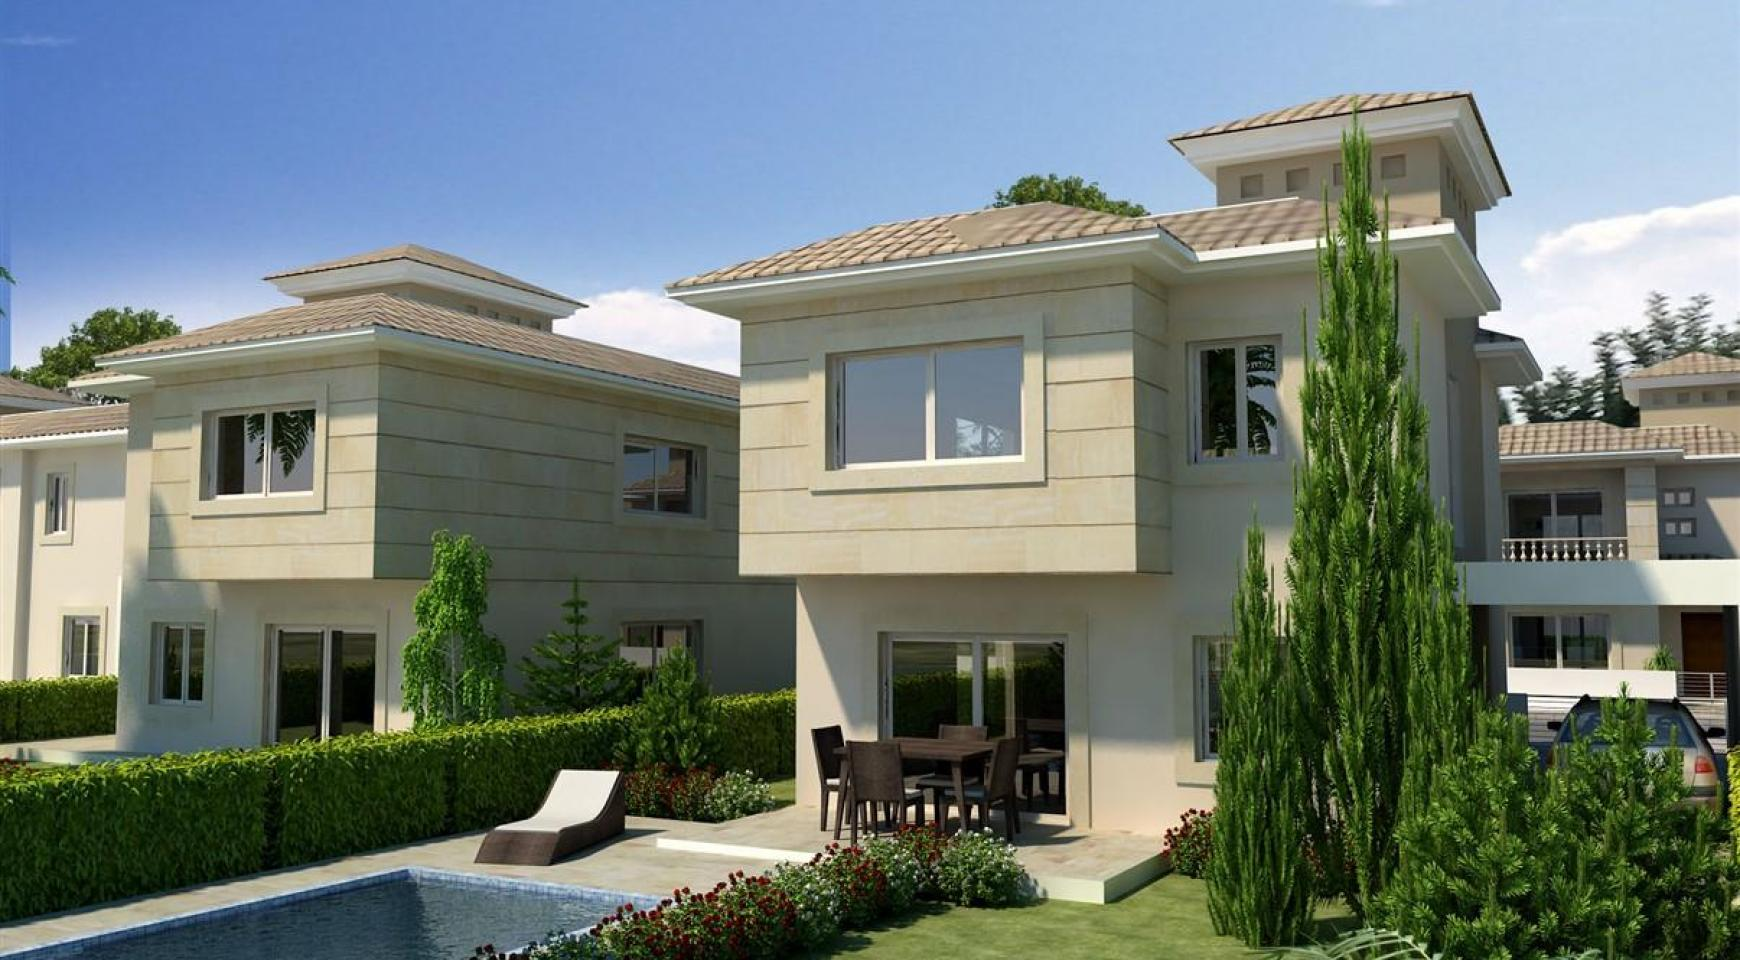 3 Bedroom Villa within a New Project - 13